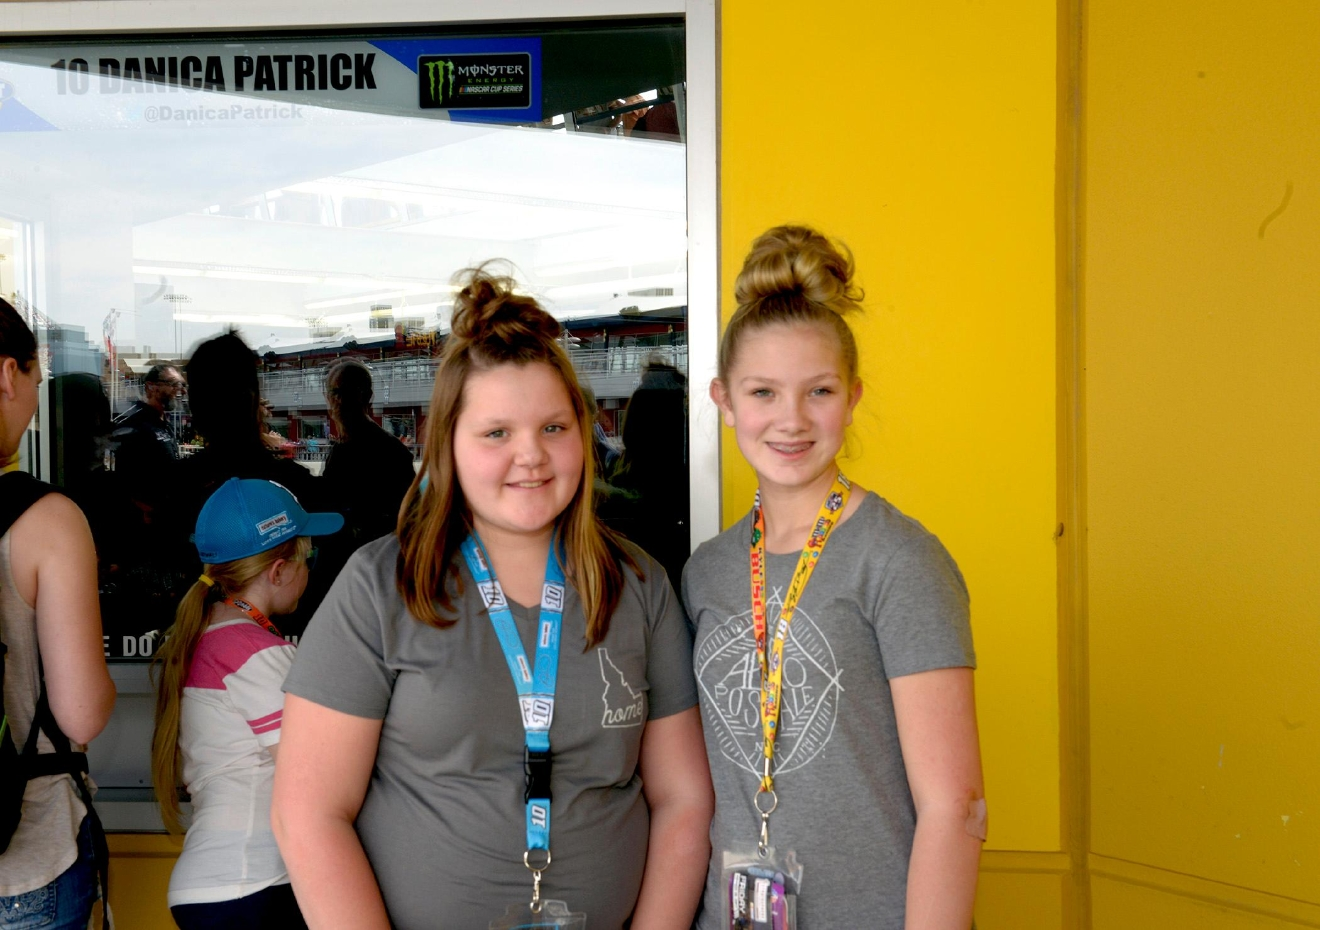 Race fans Megan Moedl (left) and Kailey Wheeler (right) wait patiently to catch a glimpse of Danica Patrick in her pit at the NEON Garage during NASCAR Stratosphere Pole Day at Las Vegas Motor Speedway. Friday, March 10, 2017. (Glenn Pinkerton/Las Vegas News Bureau)